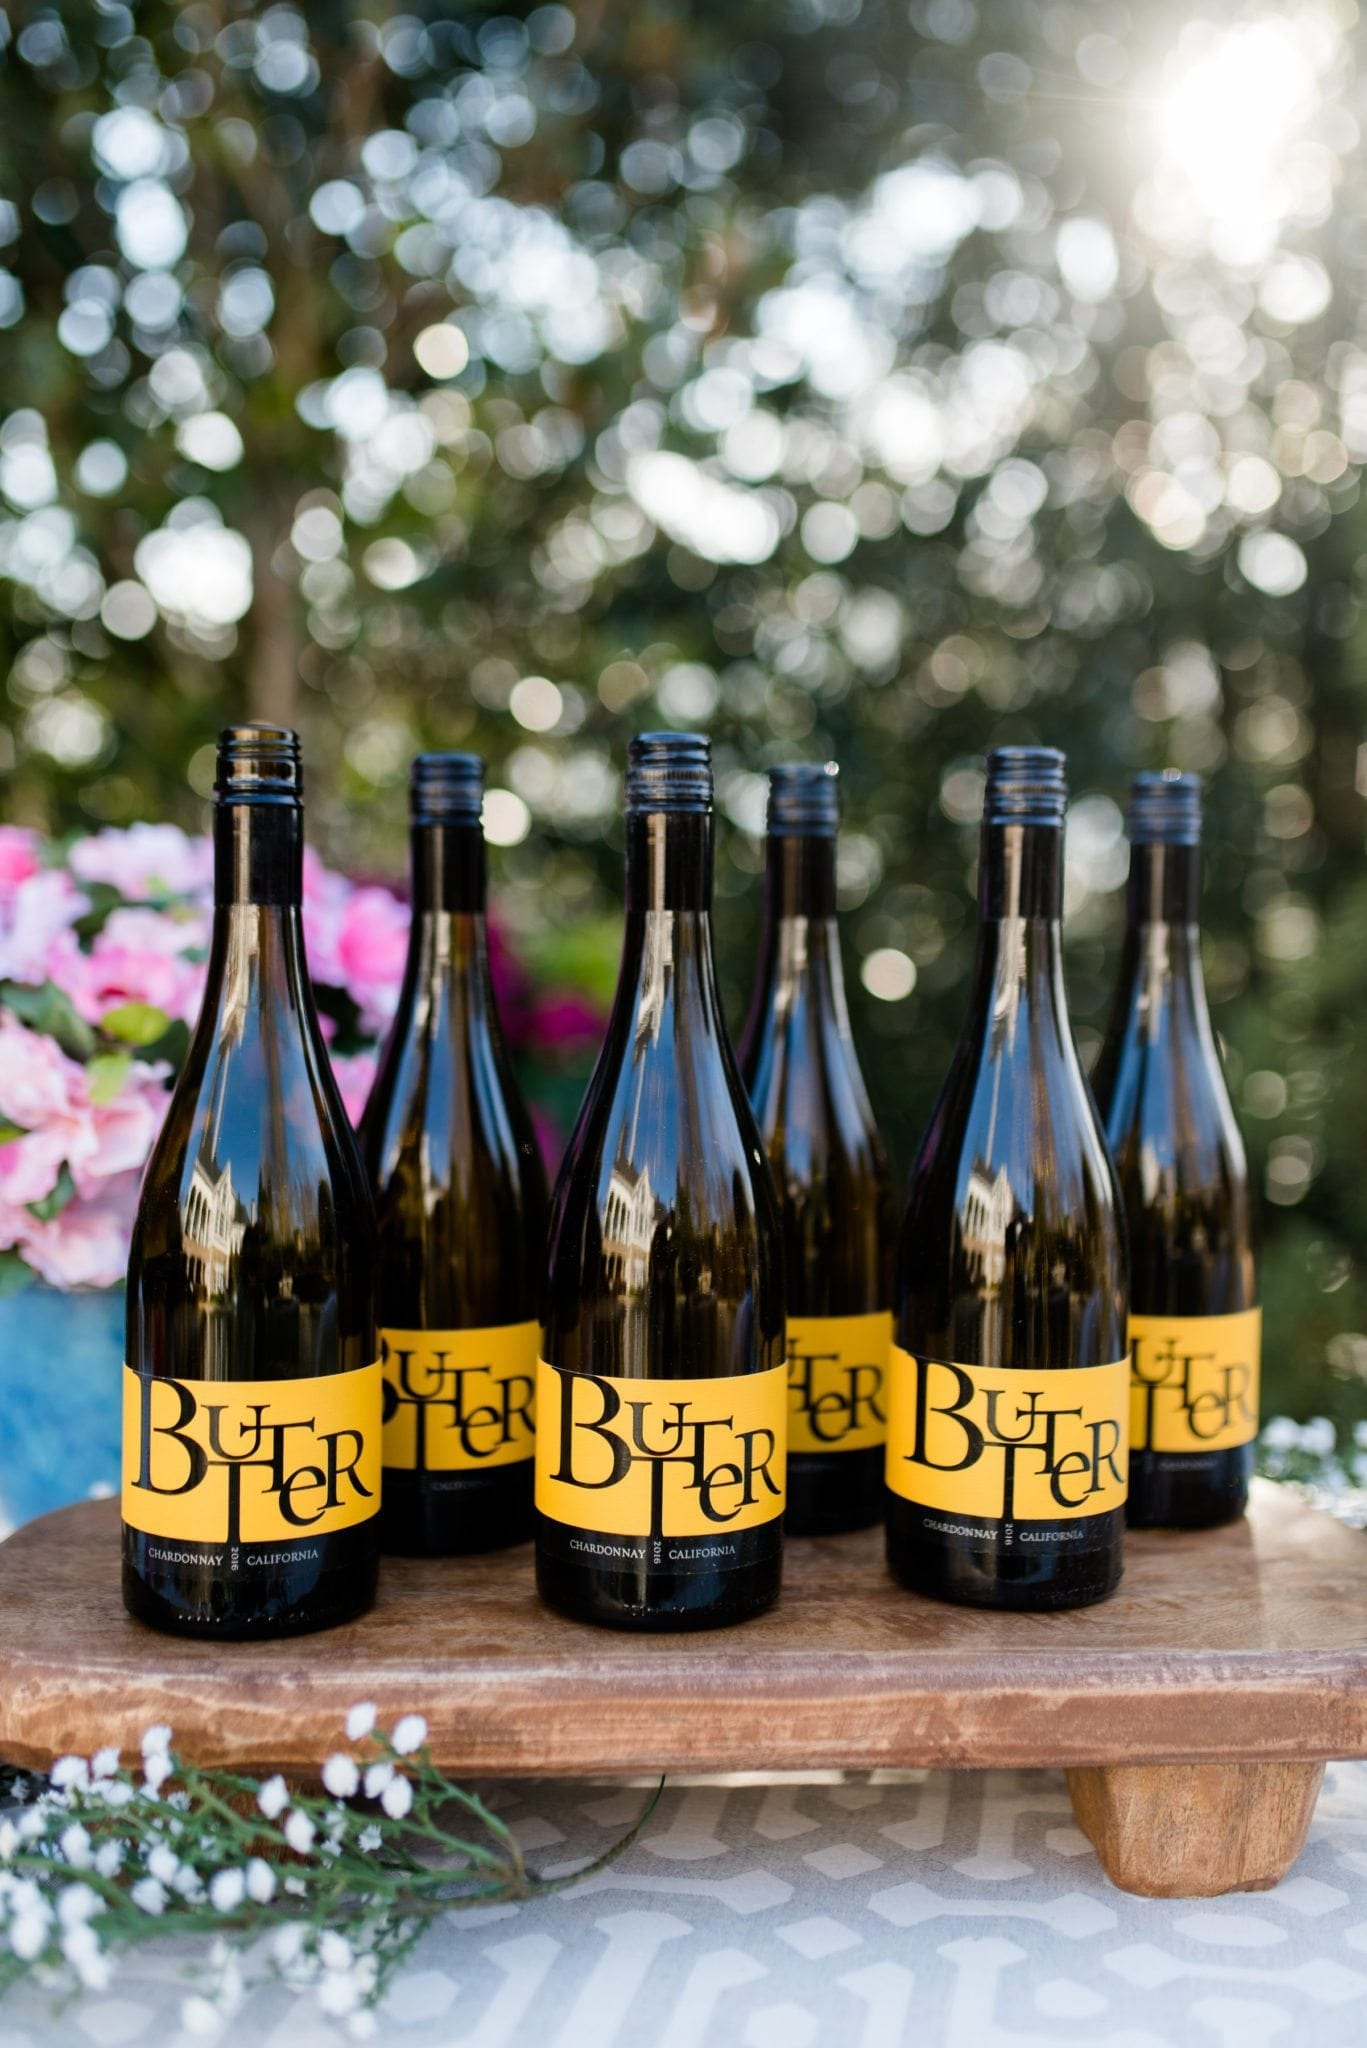 Easy to love Butter Chardonnay from JaM Cellars. Yummy Chardonnay that's perfect for spring parties!